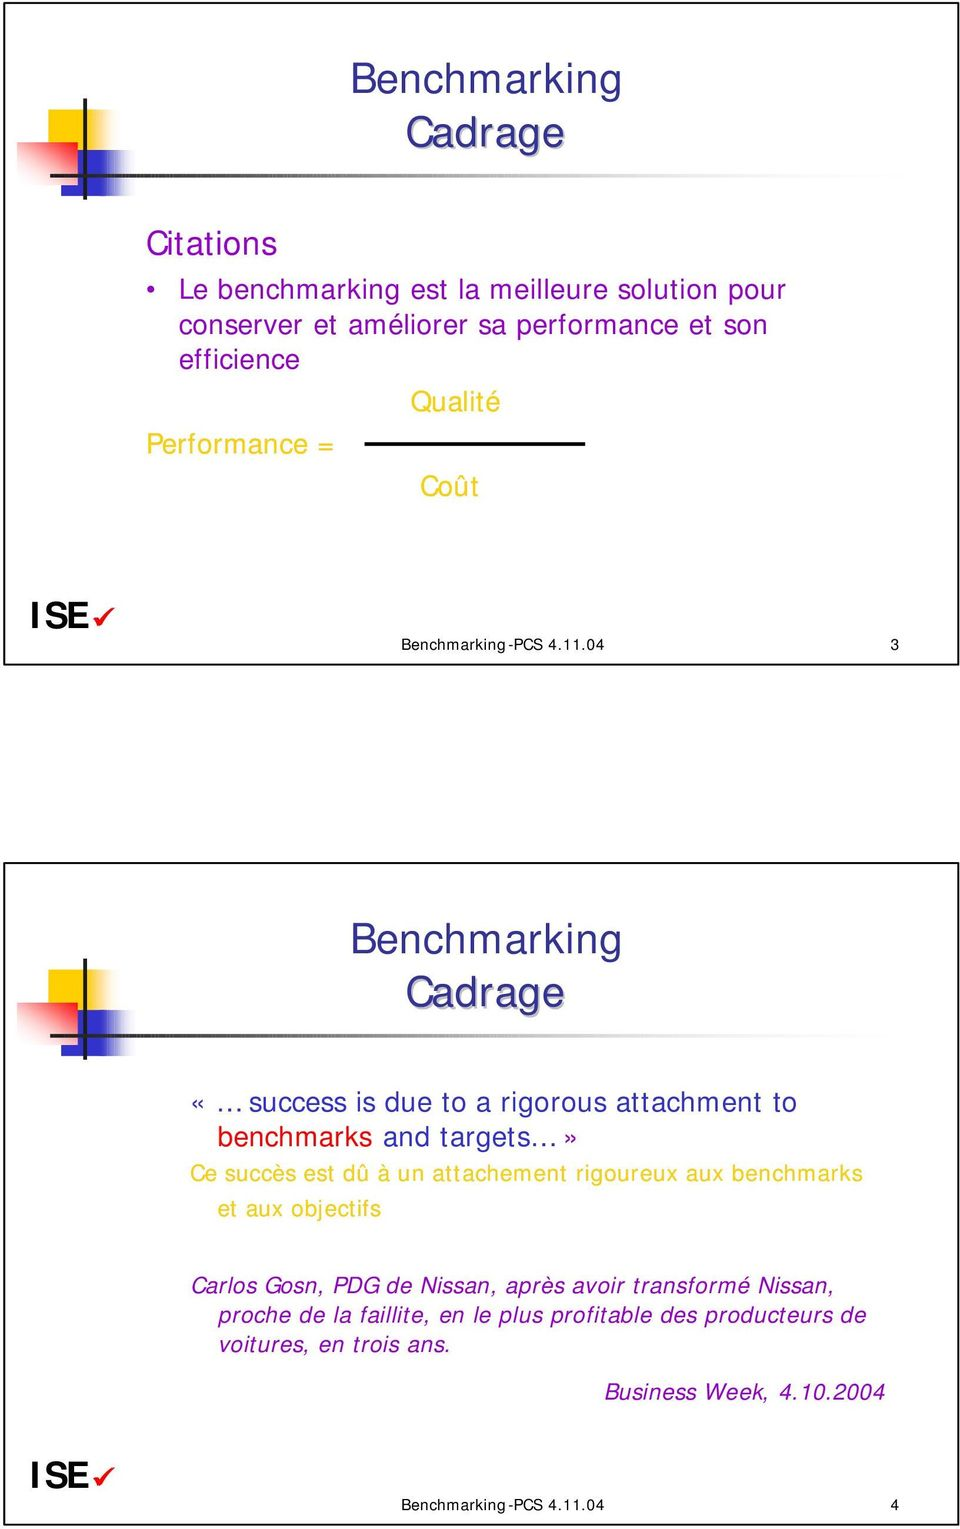 04 3 Benchmarking Cadrage «success is due to a rigorous attachment to benchmarks and targets» Ce succès est dû à un attachement rigoureux